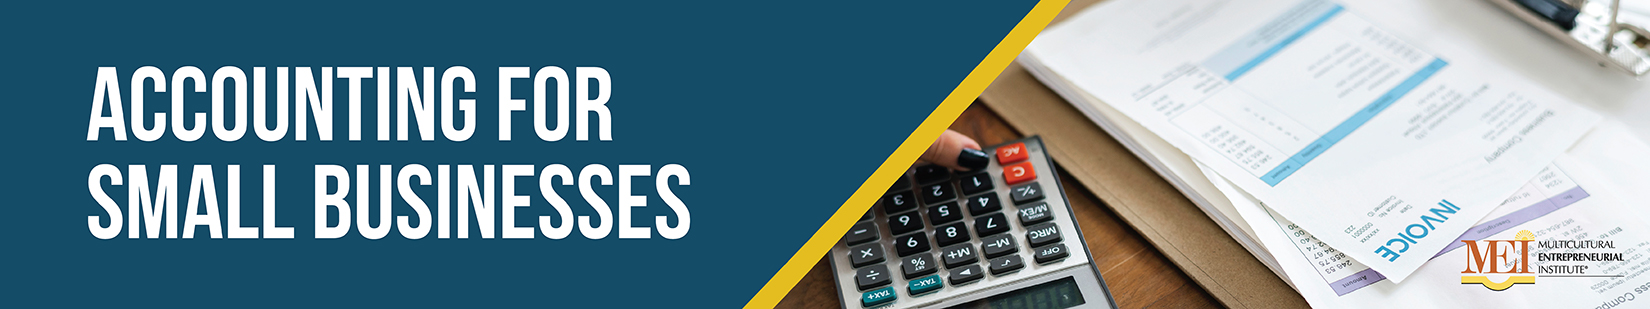 accounting website banner-01